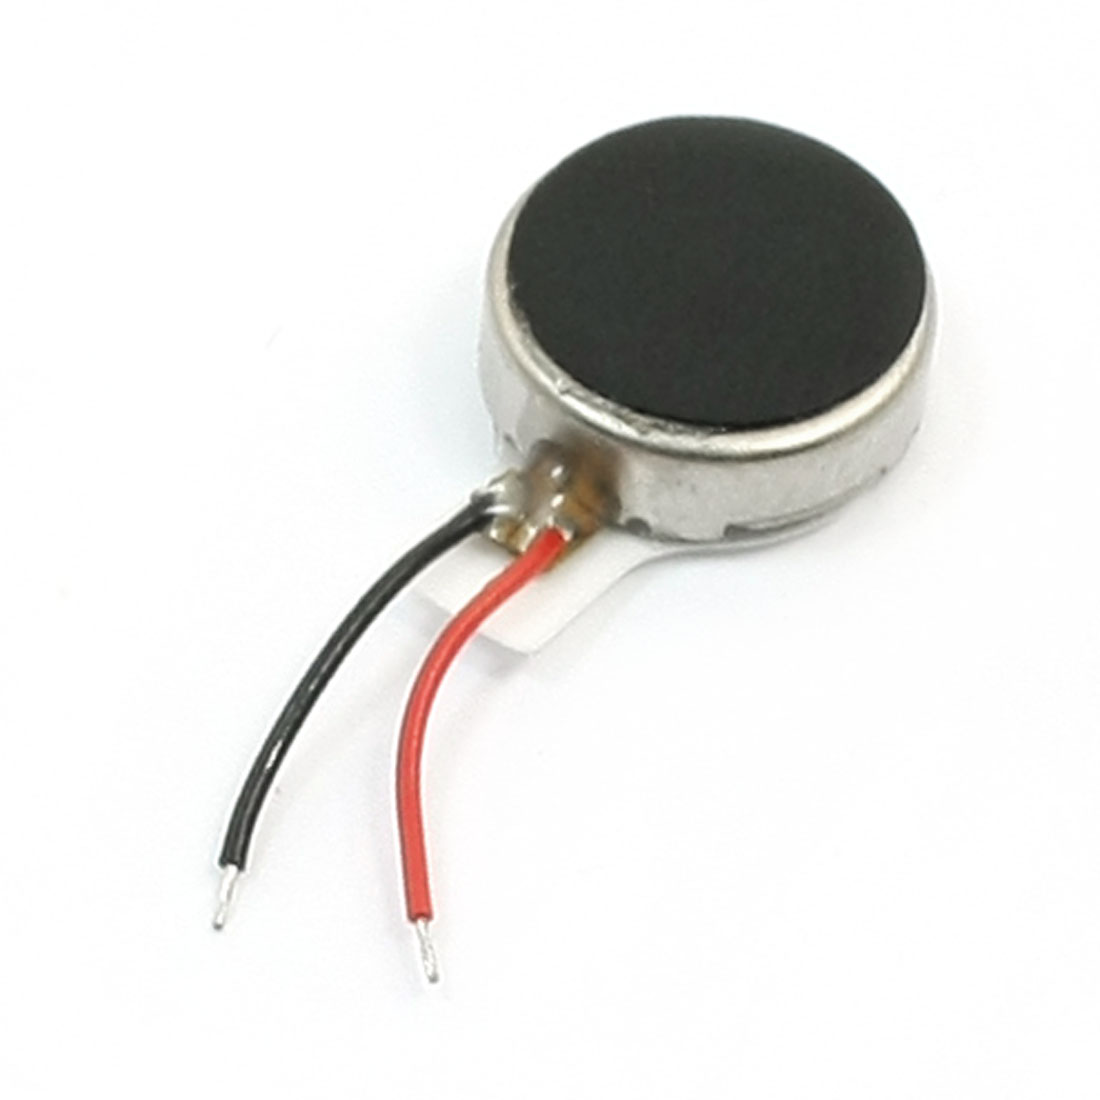 10mm-x-3mm-Flat-Round-Vibrating-Vibration-Motor-13000RPM-for-Mobile-Phone